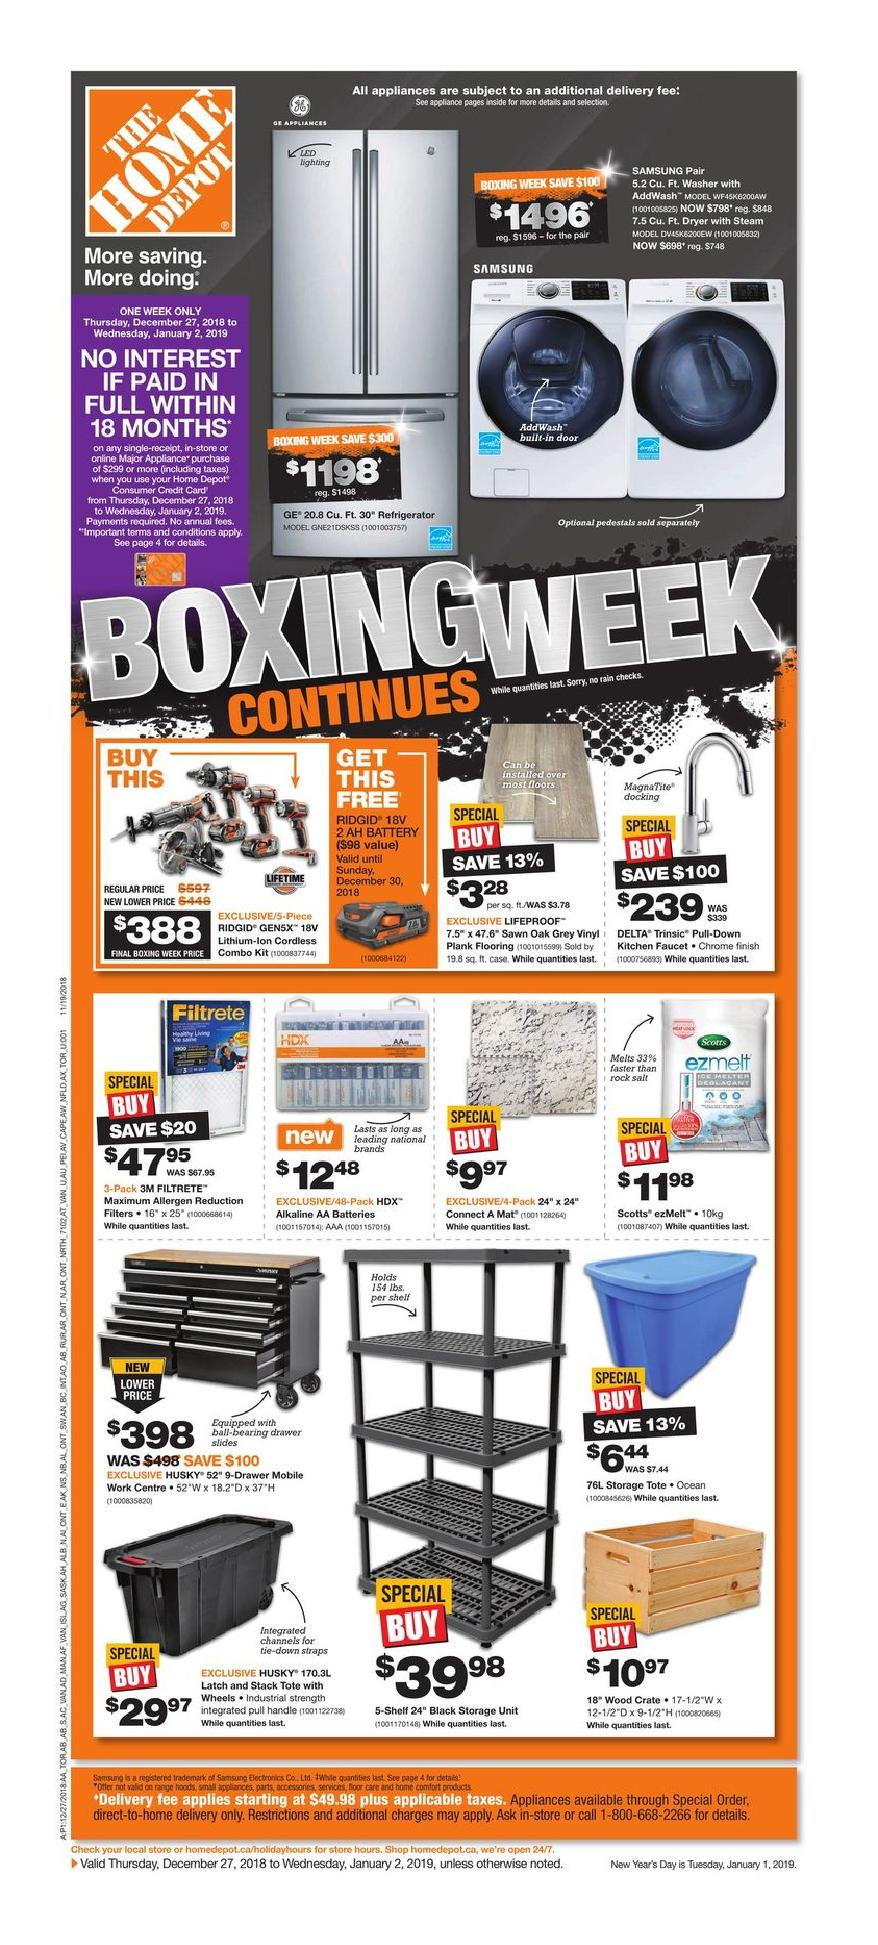 20' Ladder Home Depot Home Depot Boxing Day Sale Flyer Canada December 27 2018